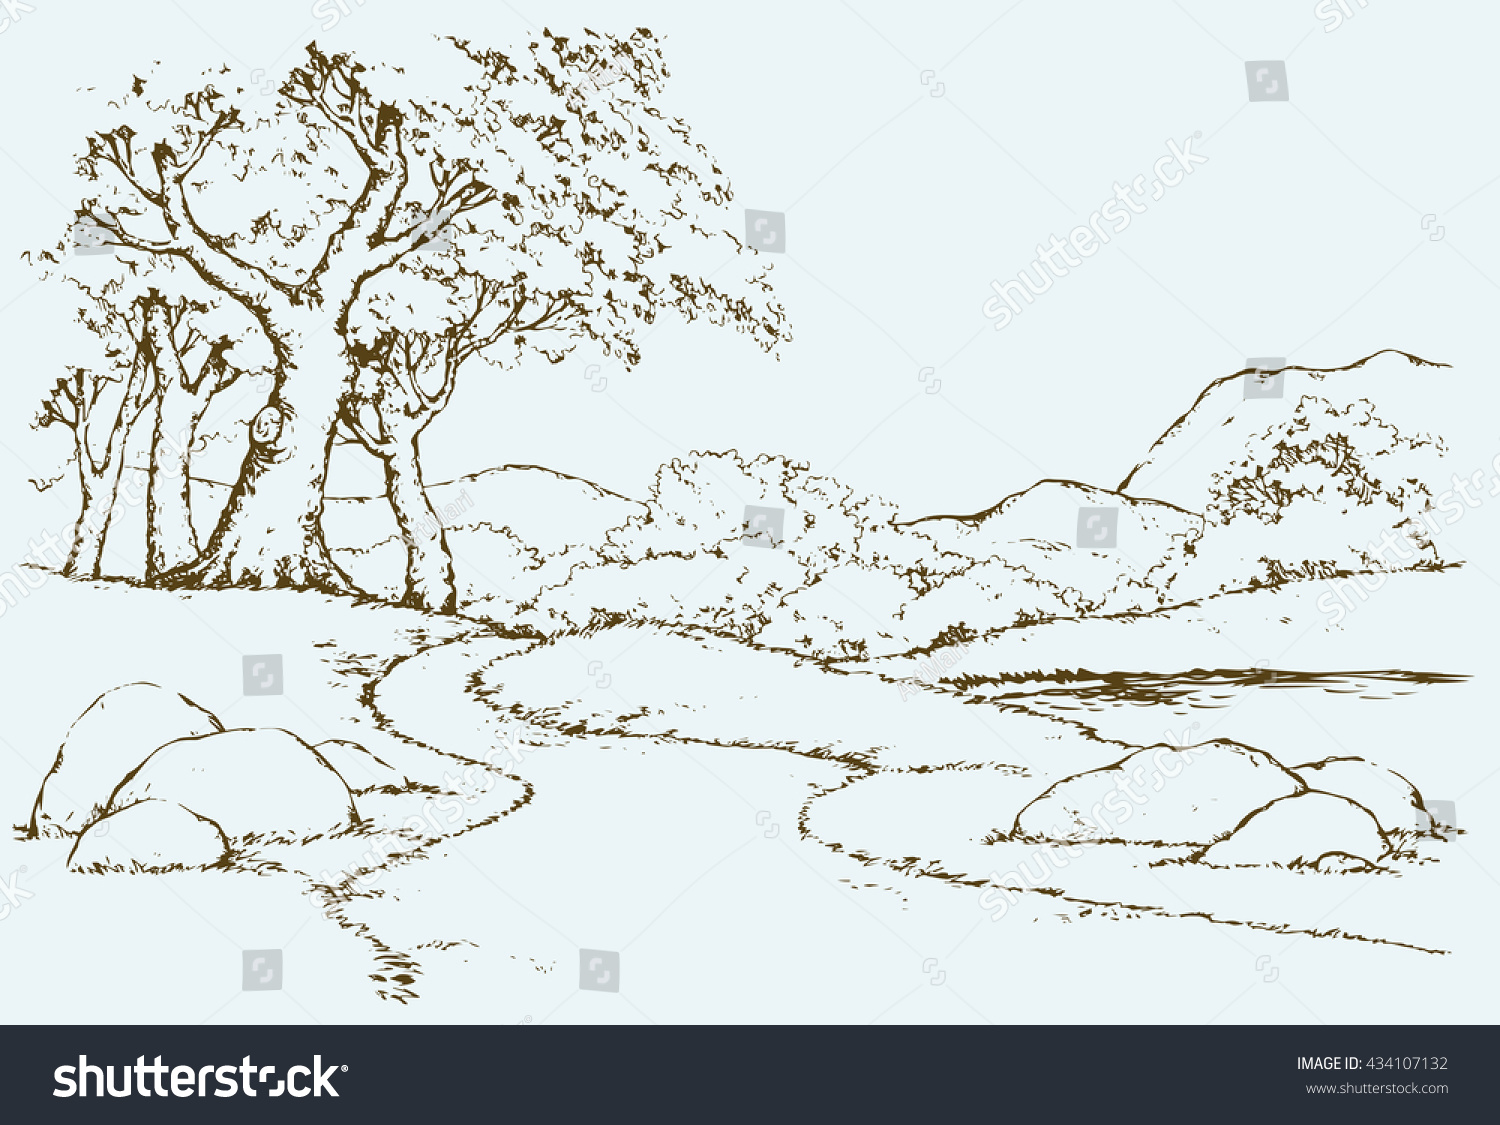 Big mount range cliff with old oakwood grove on hilltop Freehand outline ink hand drawn picture sketchy in art scribble retro style pen on paper Panoramic view with space for text on sky background